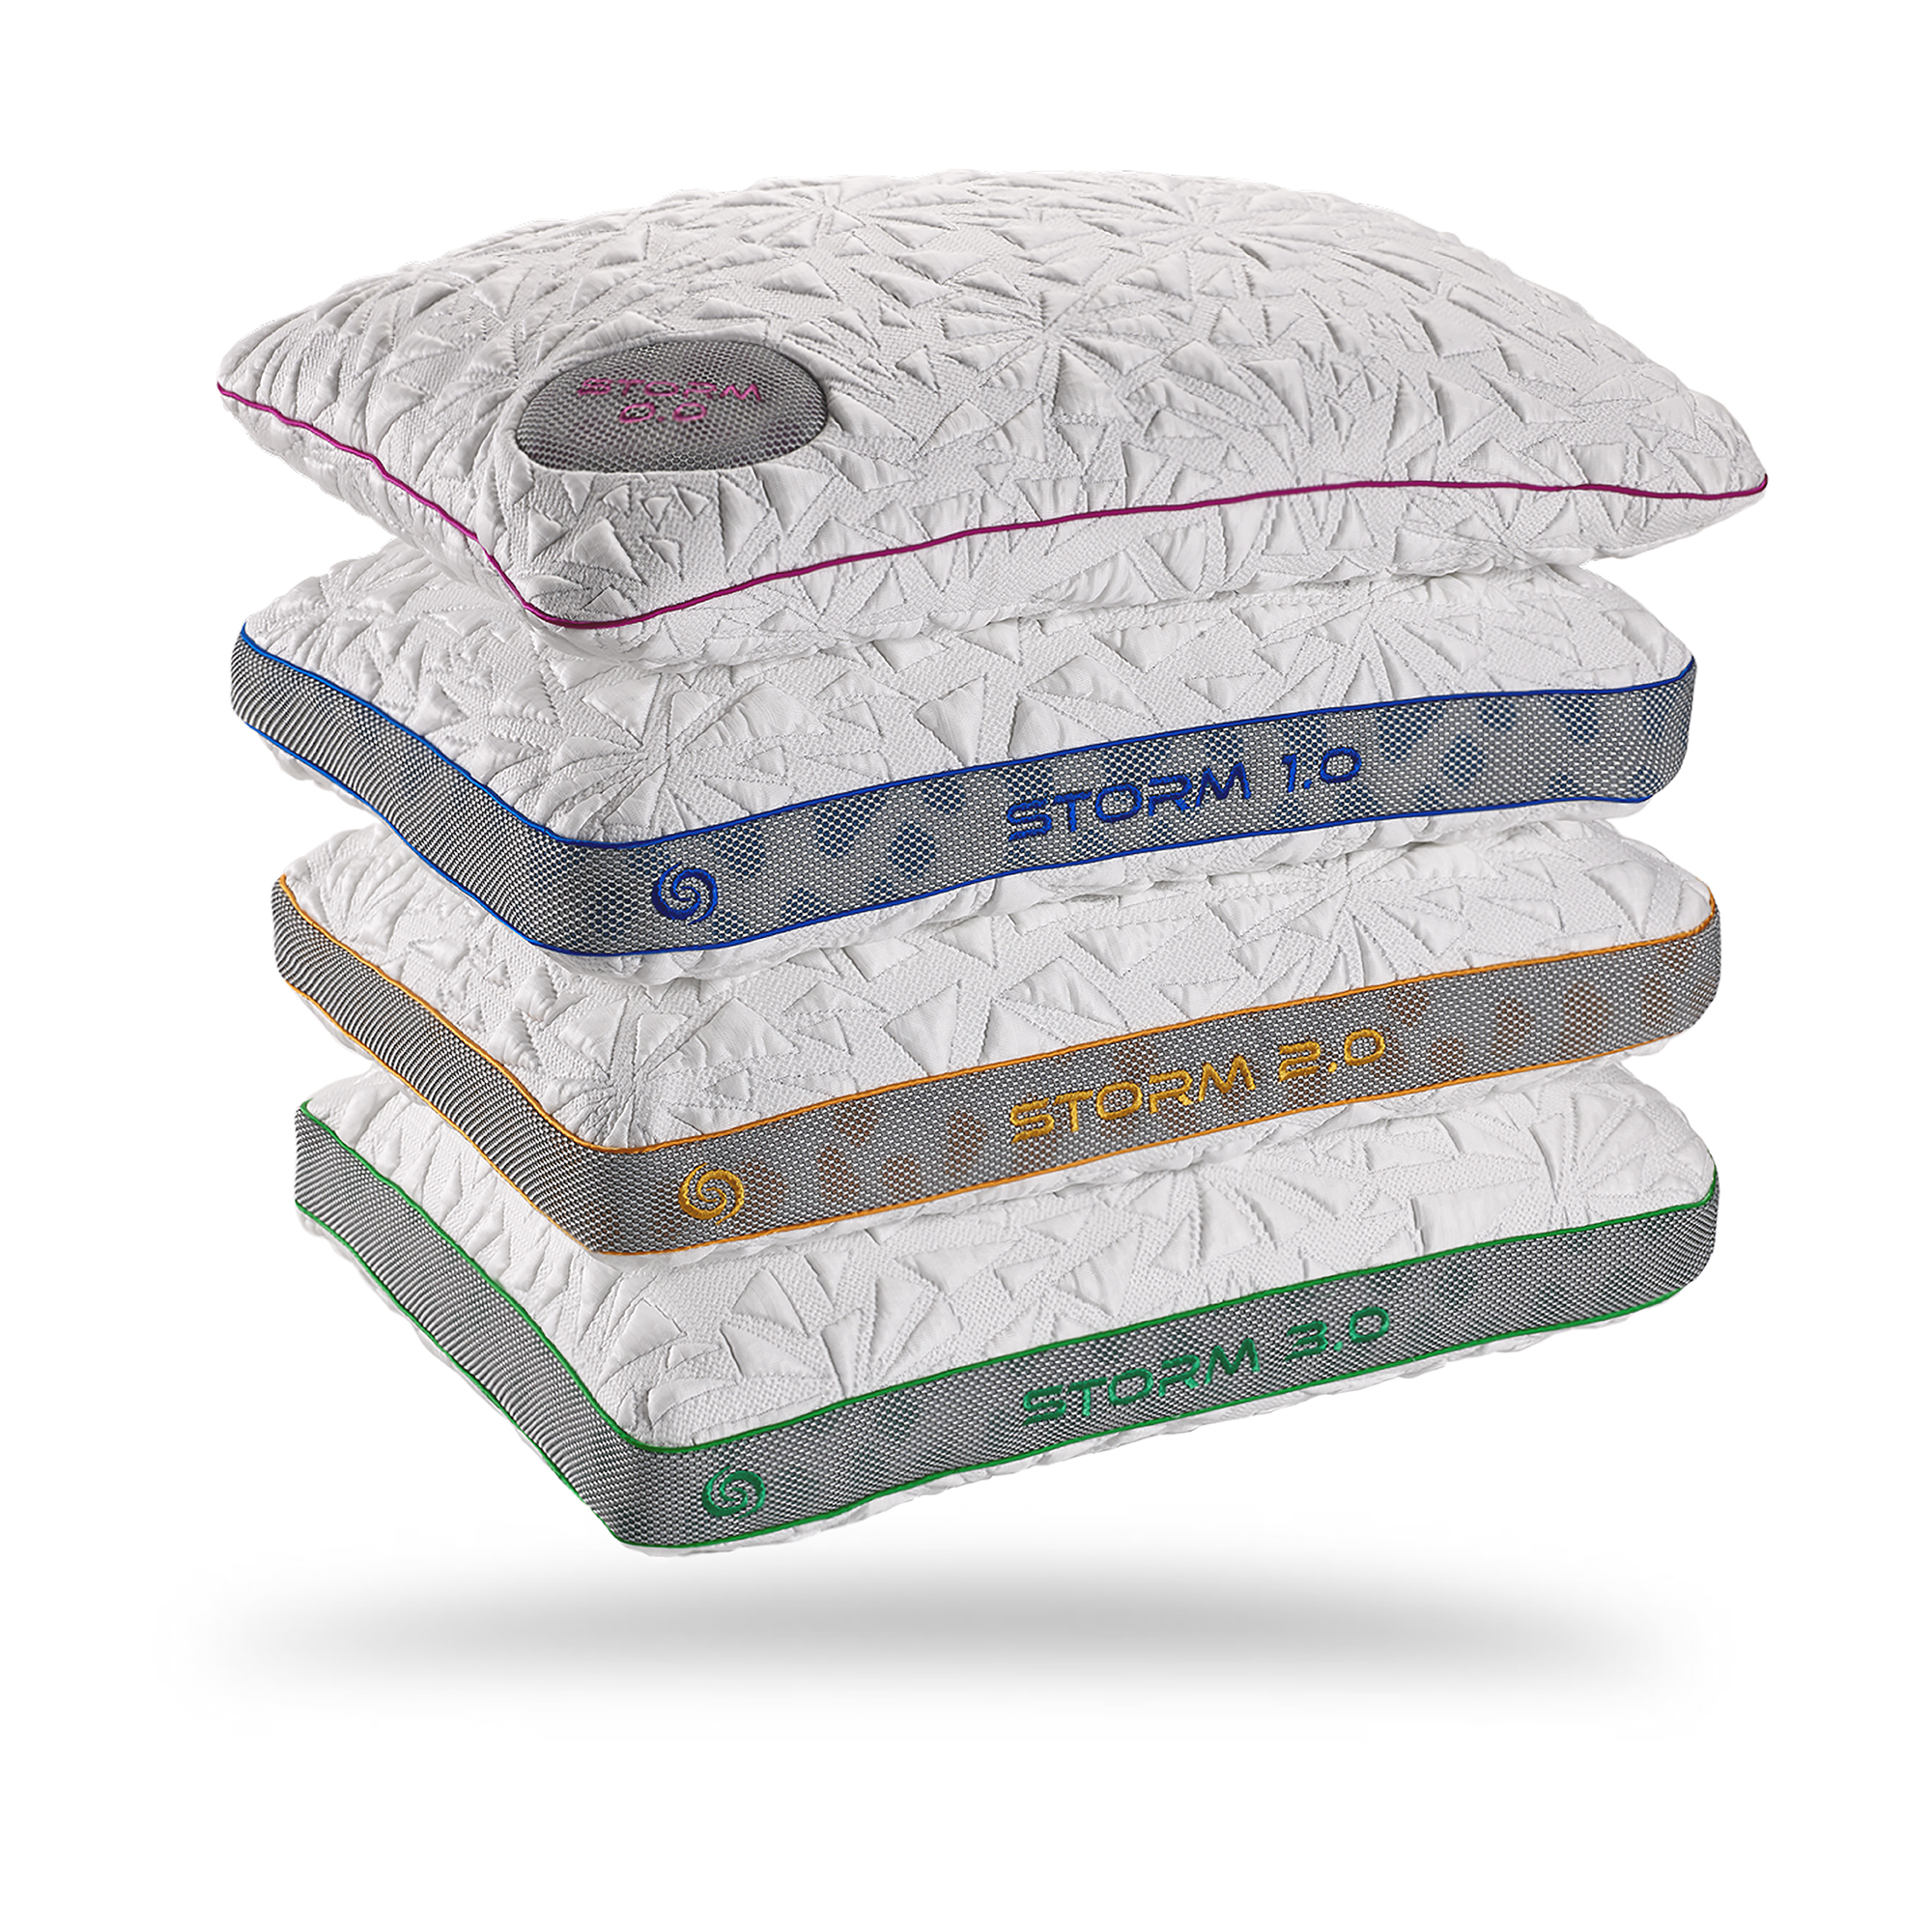 Bedgear Storm Series Pillow